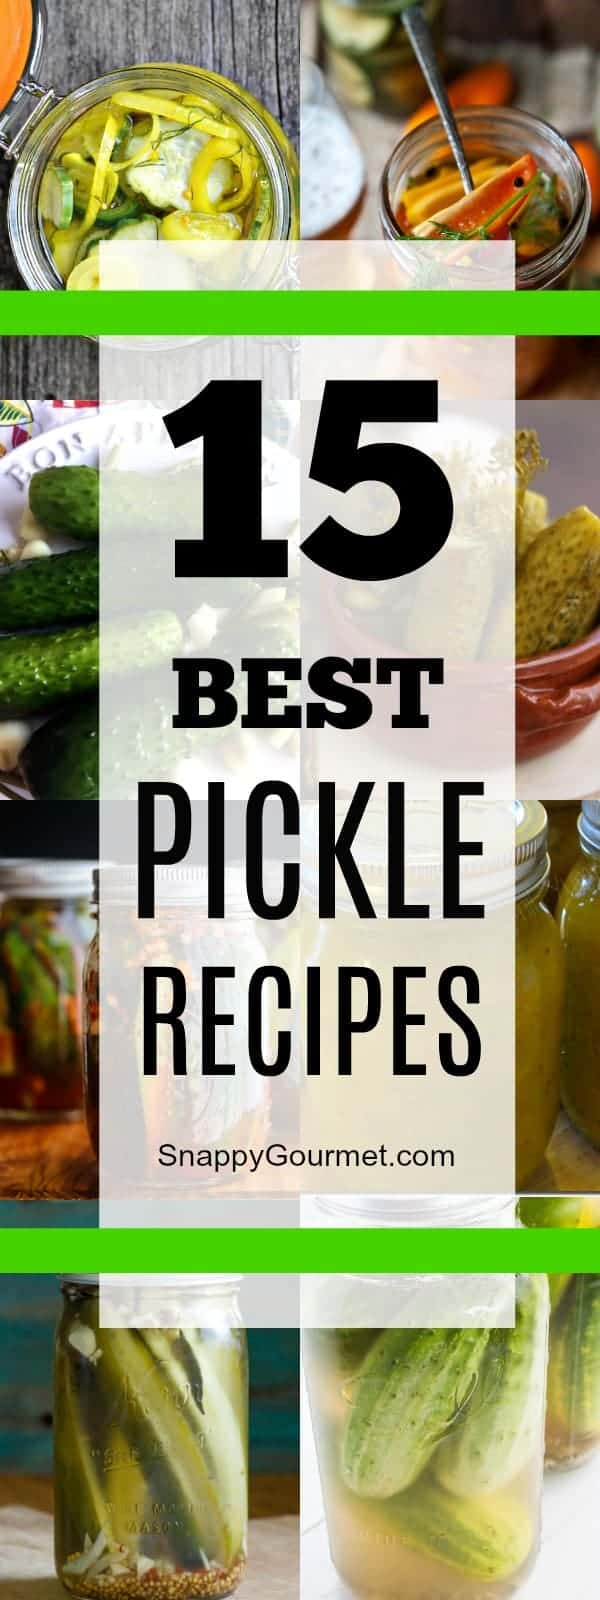 Best pickle recipes, 15 easy pickle recipes for the perfect snack and condiment. These easy homemade pickle recipes include dill pickles, sour pickles, bread and butter pickles, spicy pickles, and even Kool Aidpickles! #Pickles #Recipe #Condiment #SnappyGourmet #Homemade #Cucumbers